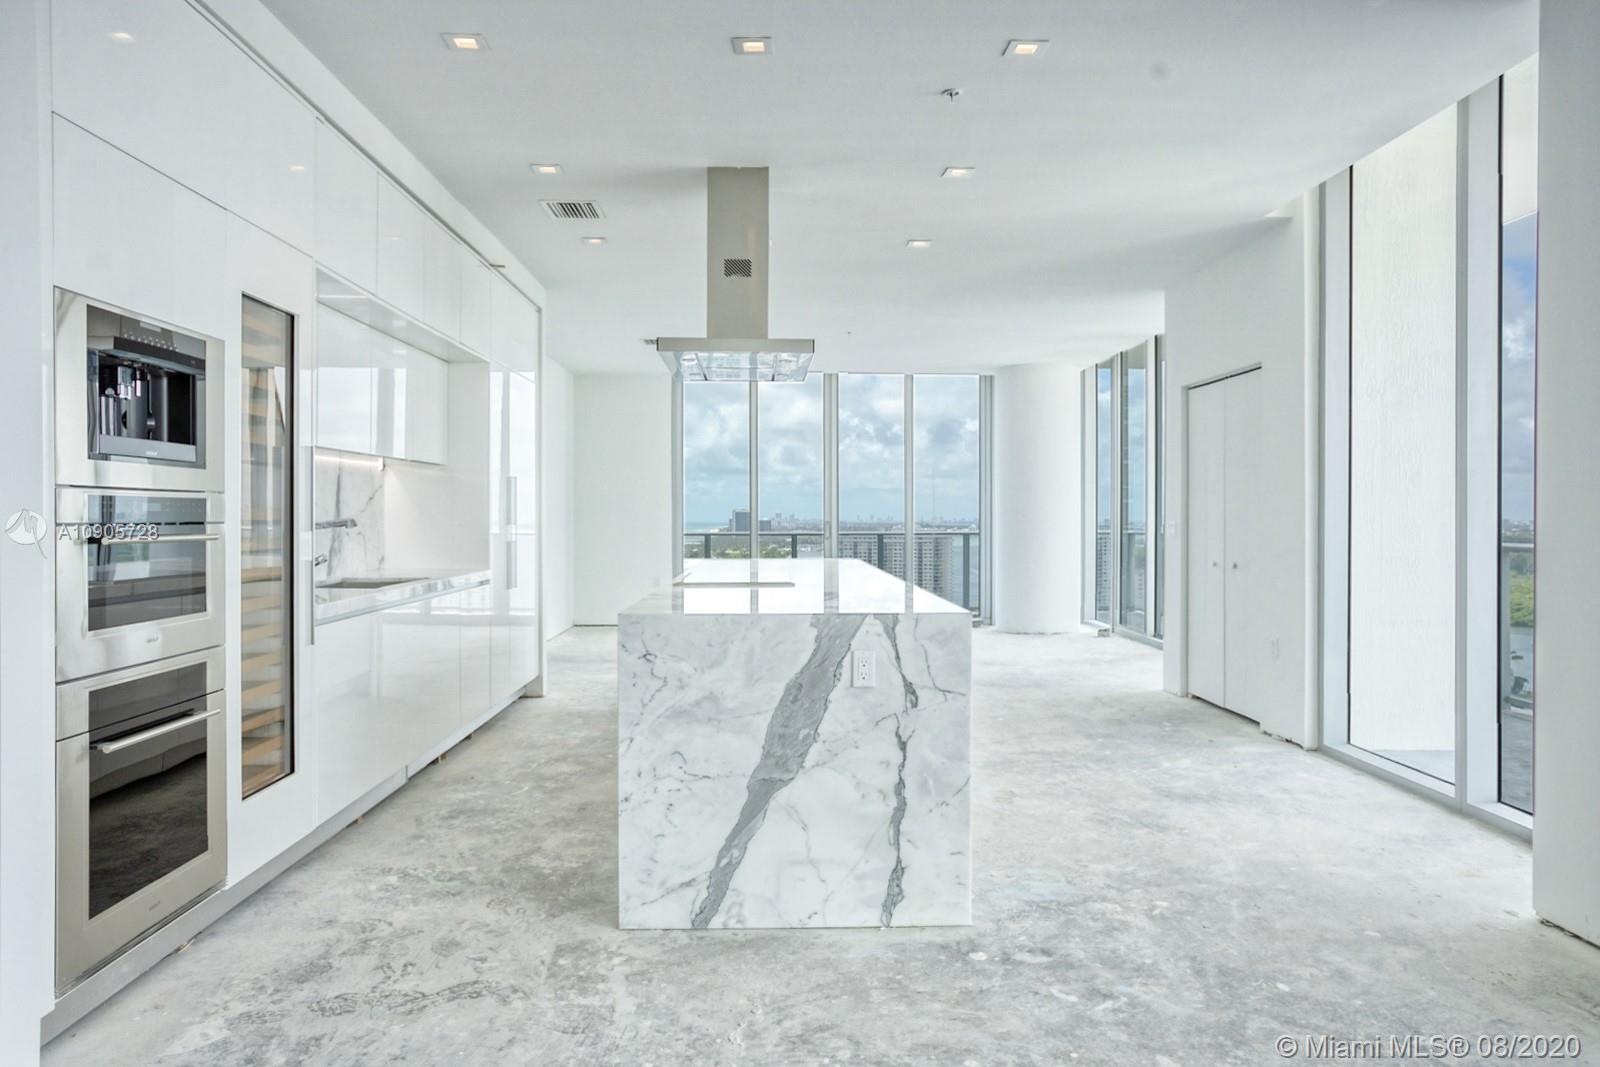 300 Sunny Isles Blvd, Unit #TS4 Luxury Real Estate